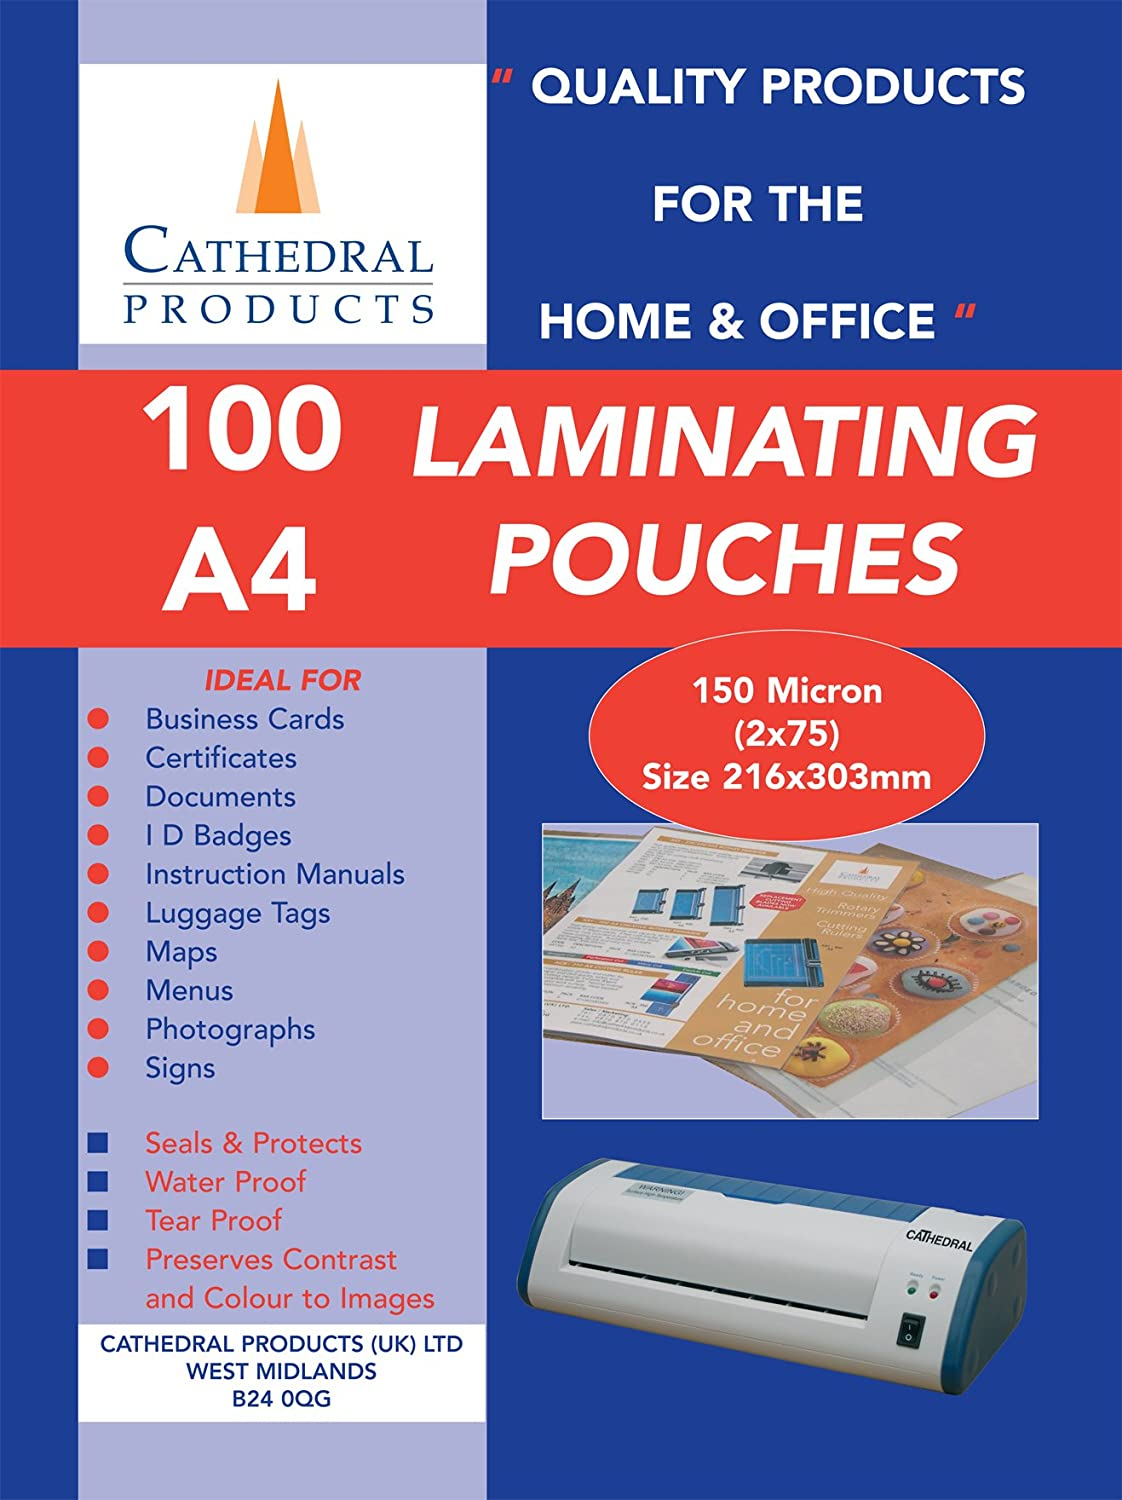 Cathedral Laminating Pouches 150 Micron, 100 Pack, A4: Amazon.co ...